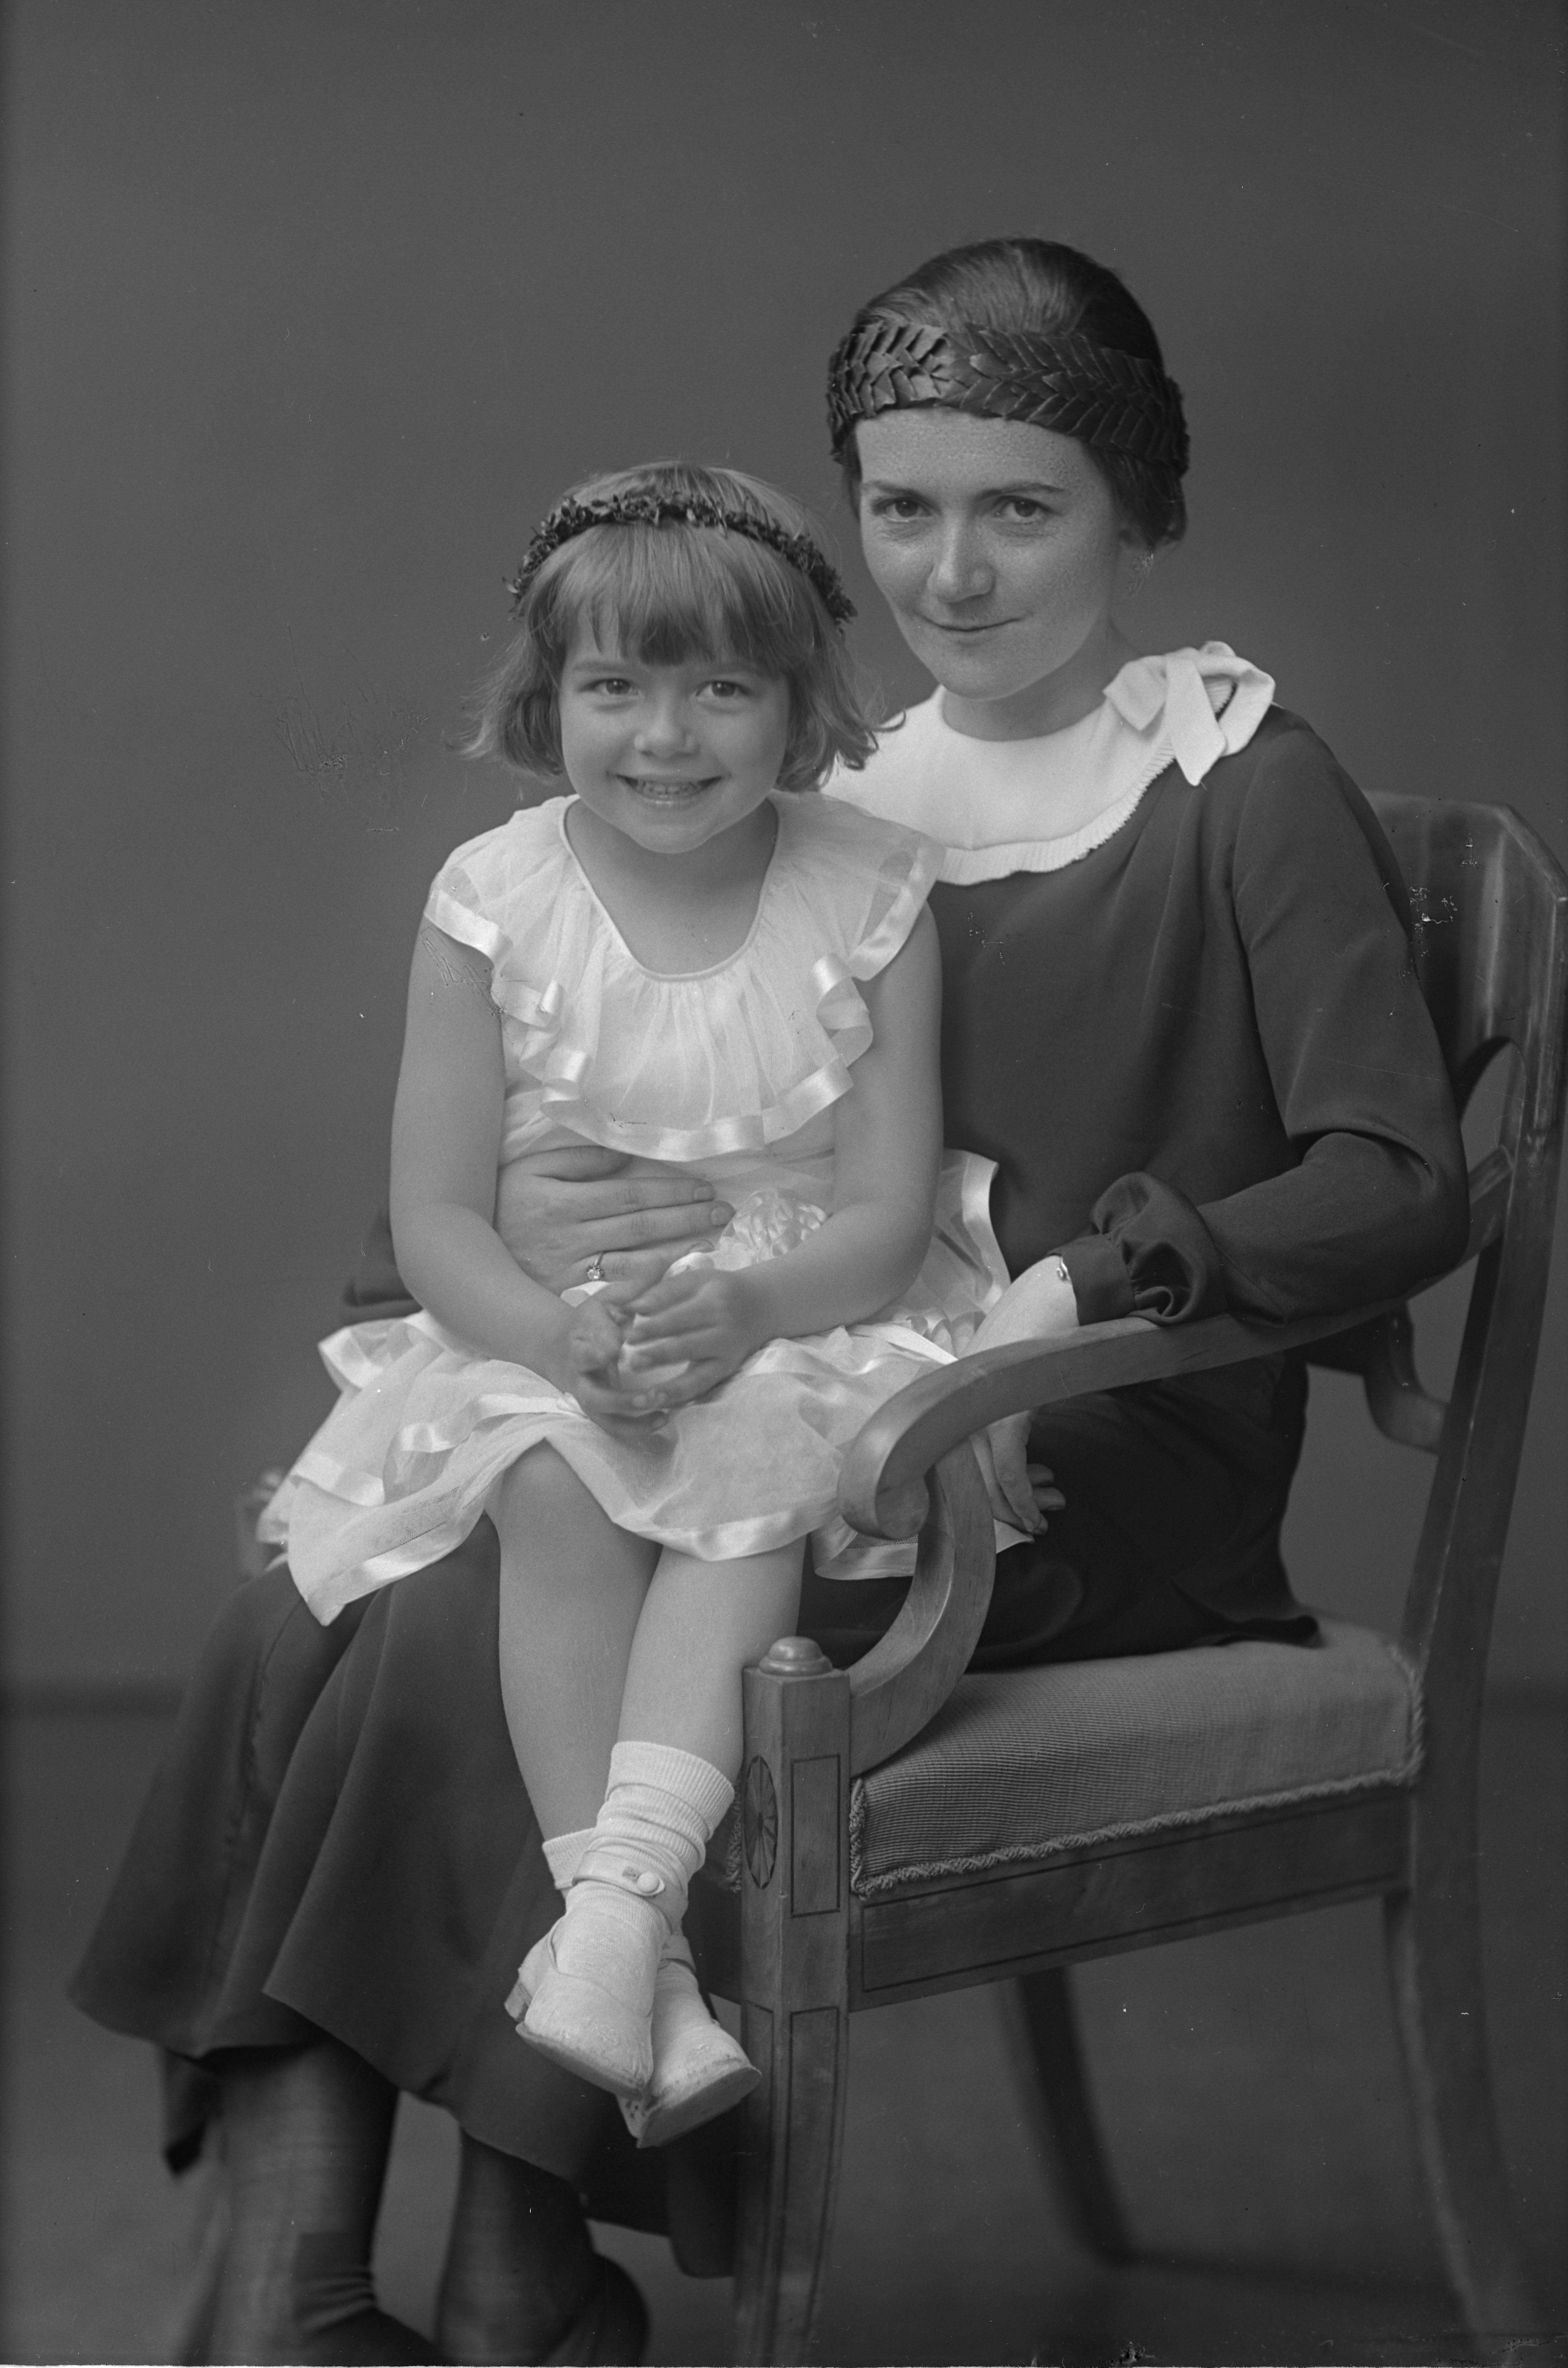 Toni Schmid, as PhD graduate with a girl on her lap, 1931. Photo: Per Bagge (1866-1936). Lund University Library (89261:2)